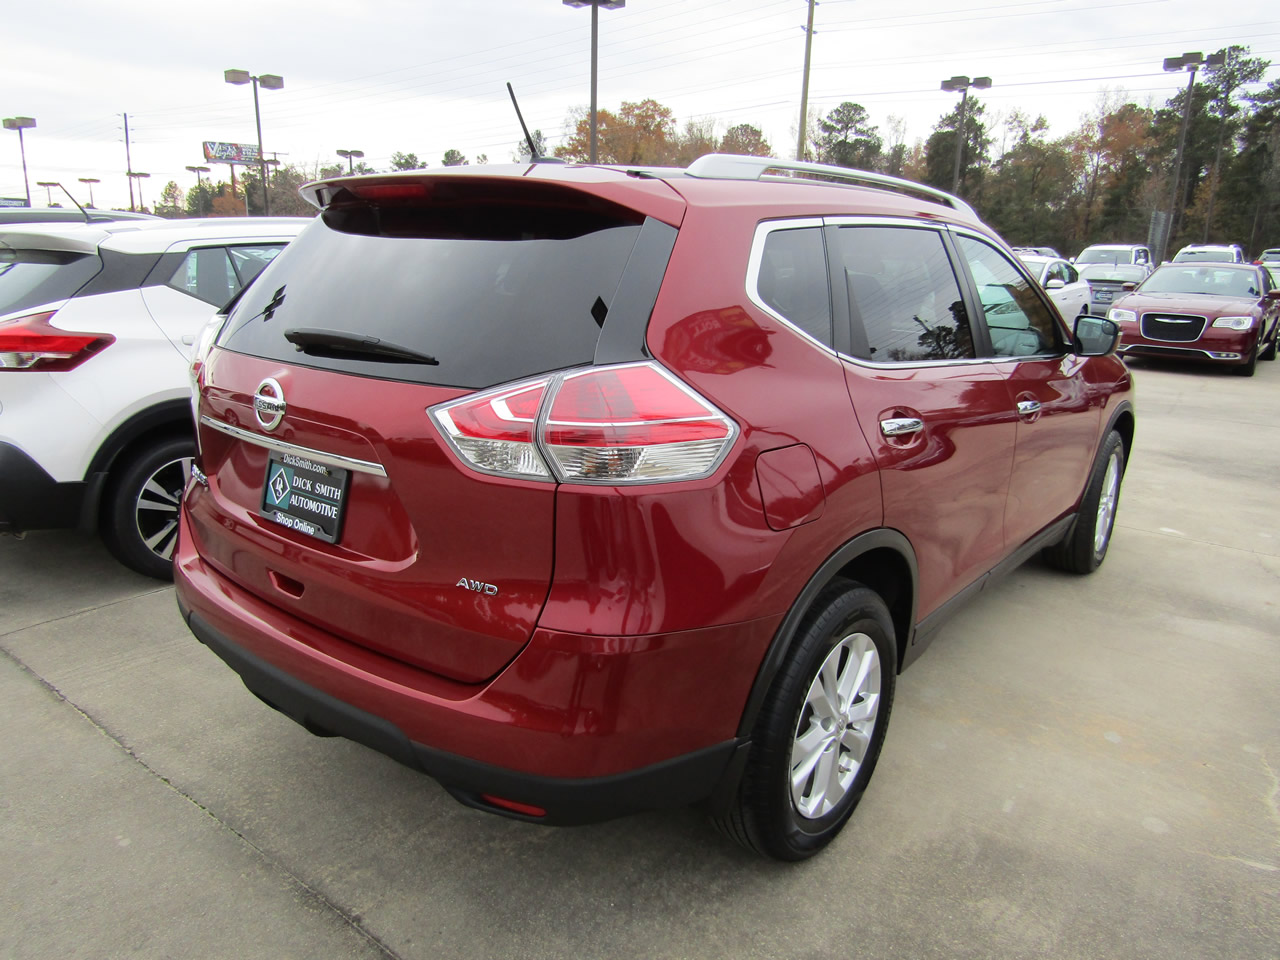 used 2015 nissan rogue sv awd vin 5n1at2mv6fc909909 columbia sc 29210 dick smith nissan of. Black Bedroom Furniture Sets. Home Design Ideas